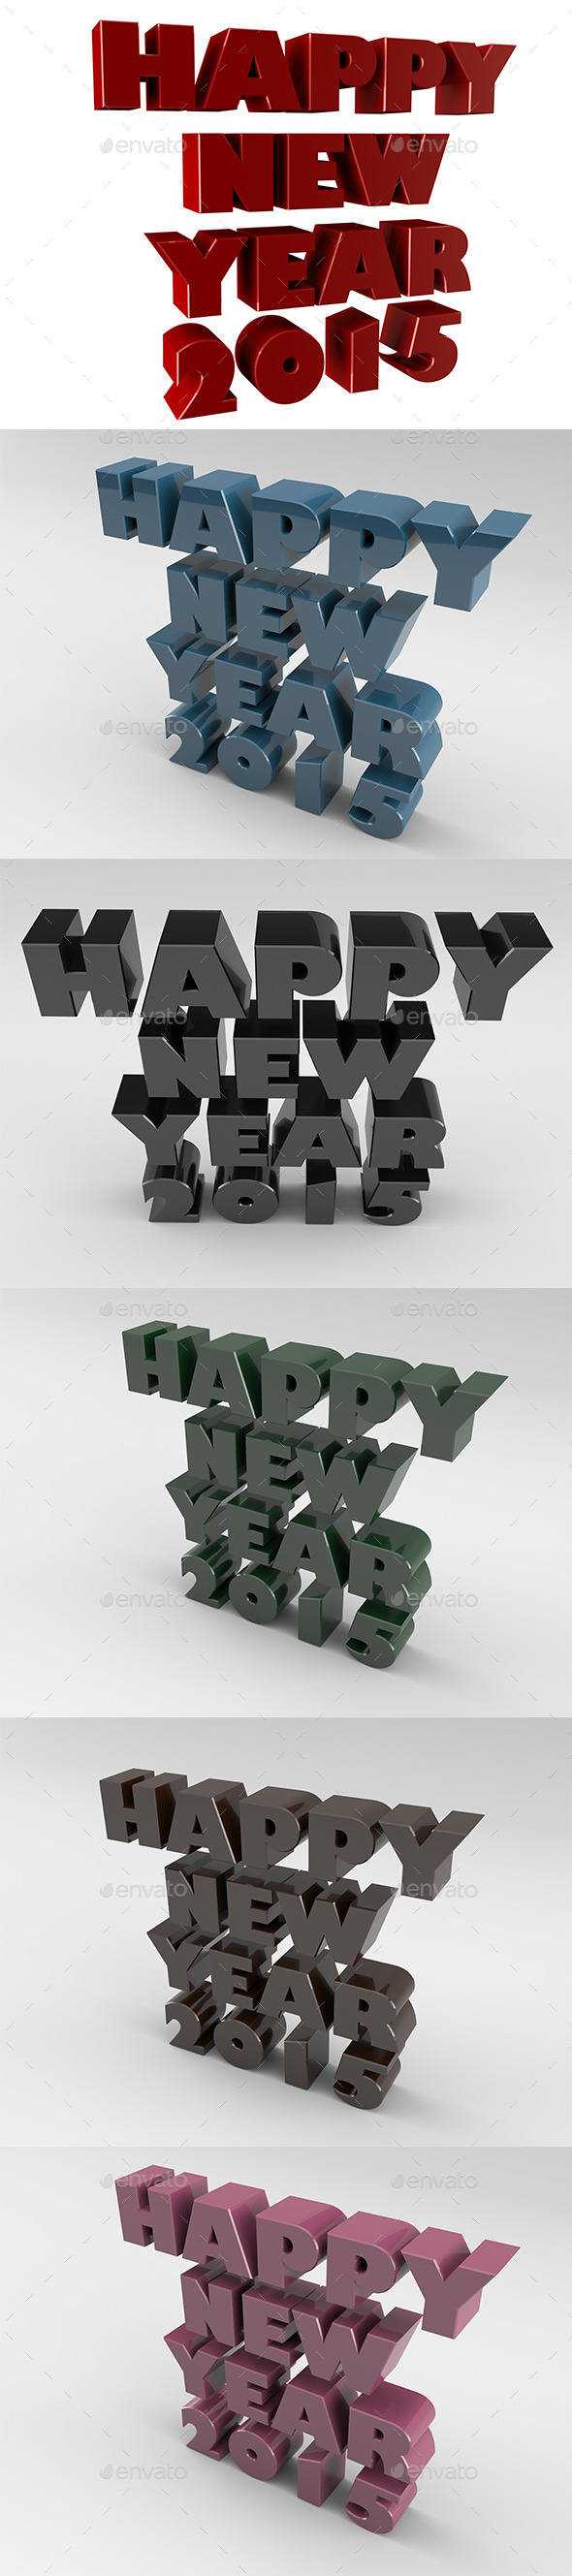 Happy New Year 2015 - Text 3D Renders